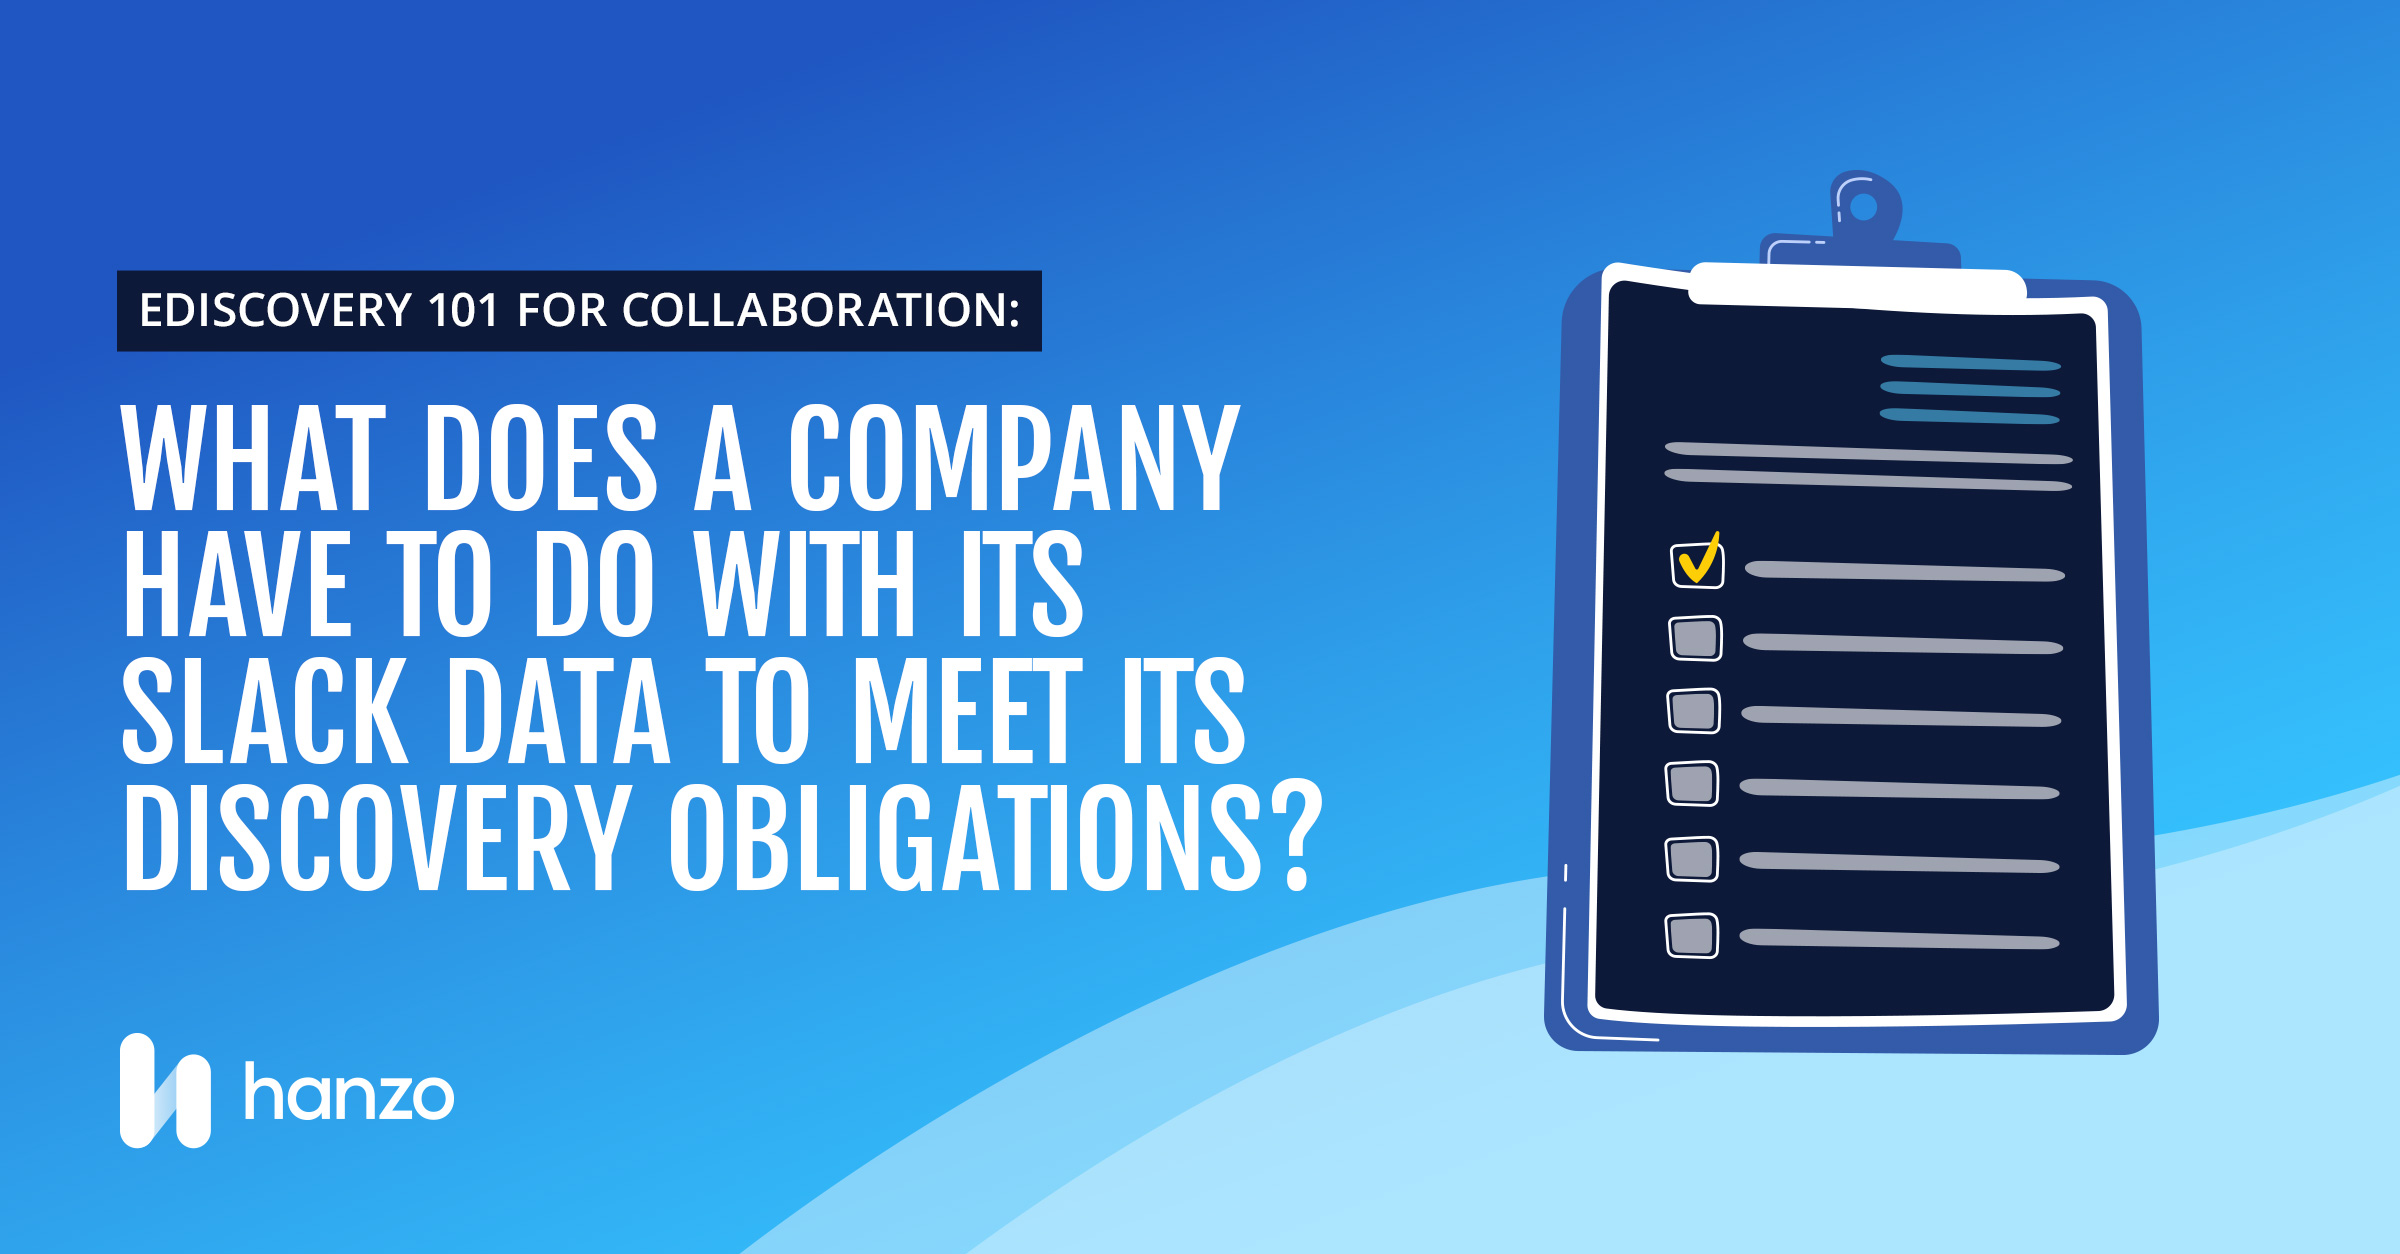 Ediscovery-101-For-Collaboration-Article4--SOCIAL-CARDS